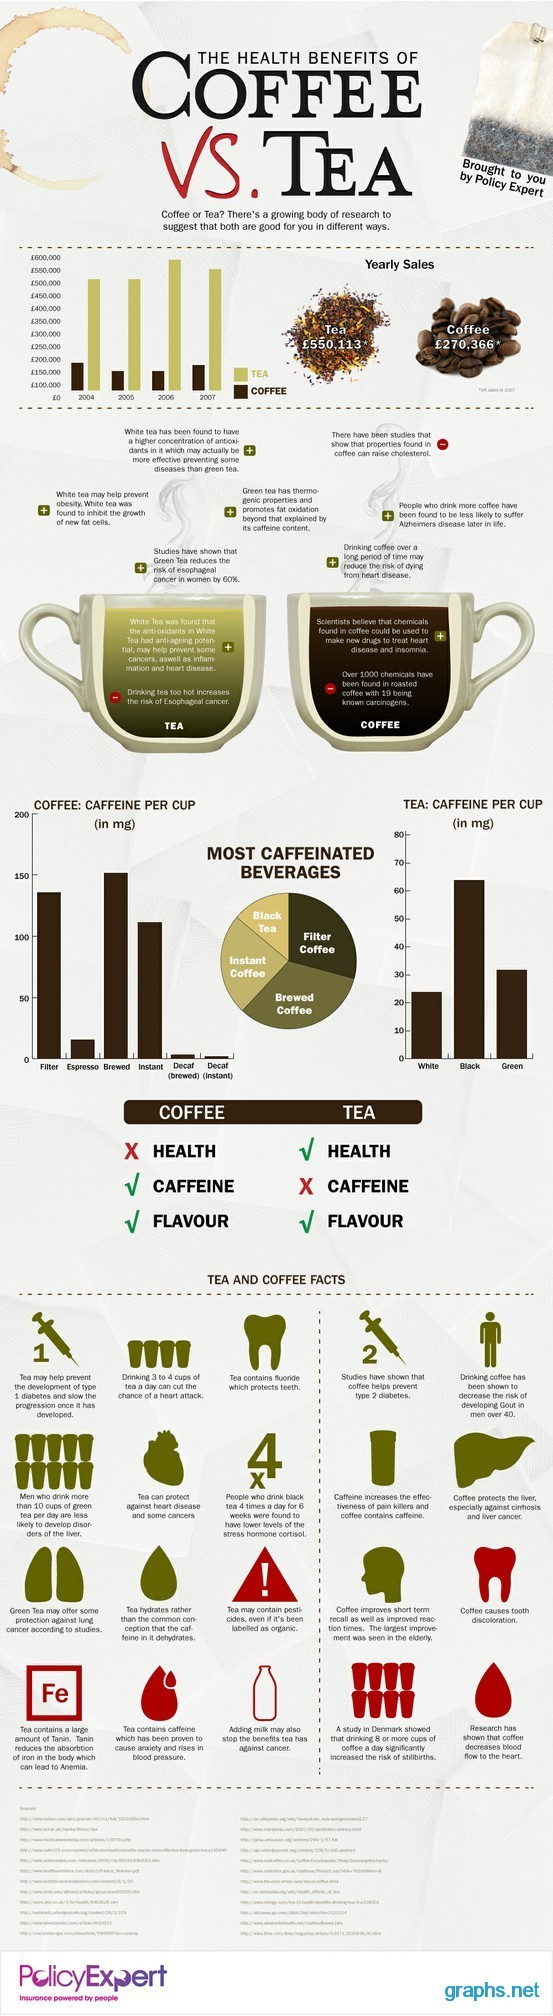 Compare Health Benefits of Tea and Coffee